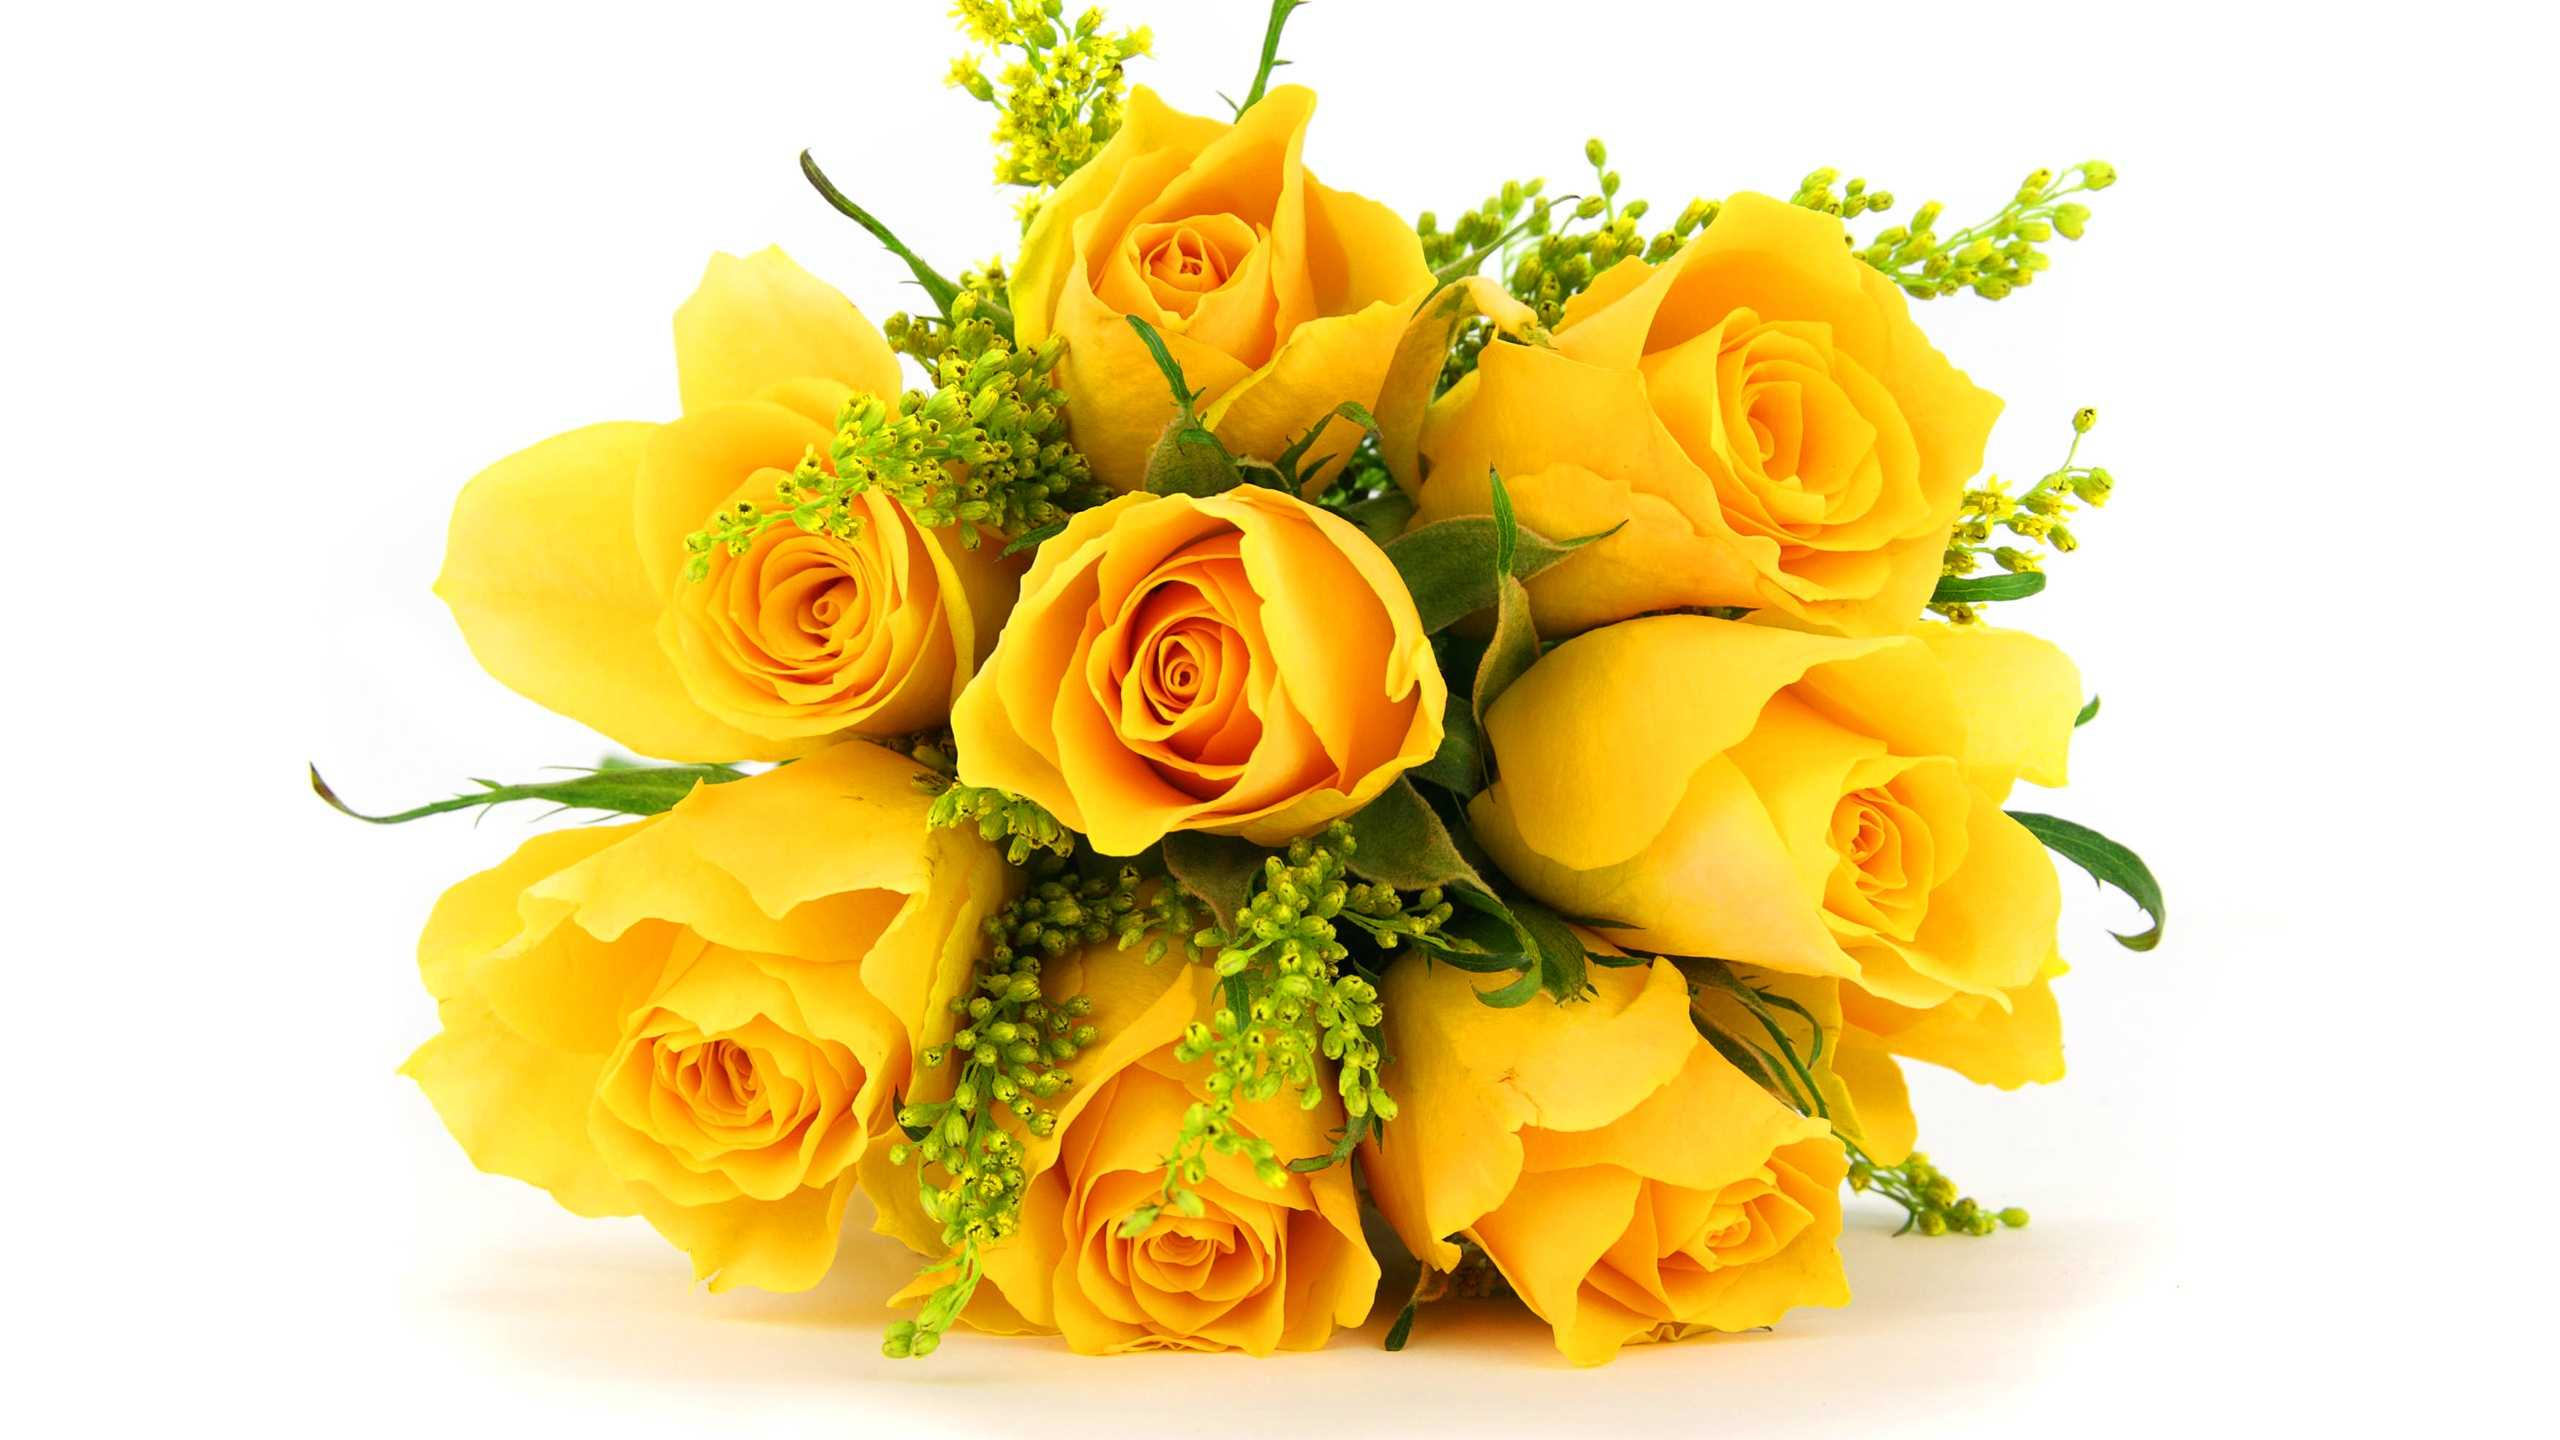 Yellow Rose Hd Images Download , HD Wallpaper & Backgrounds